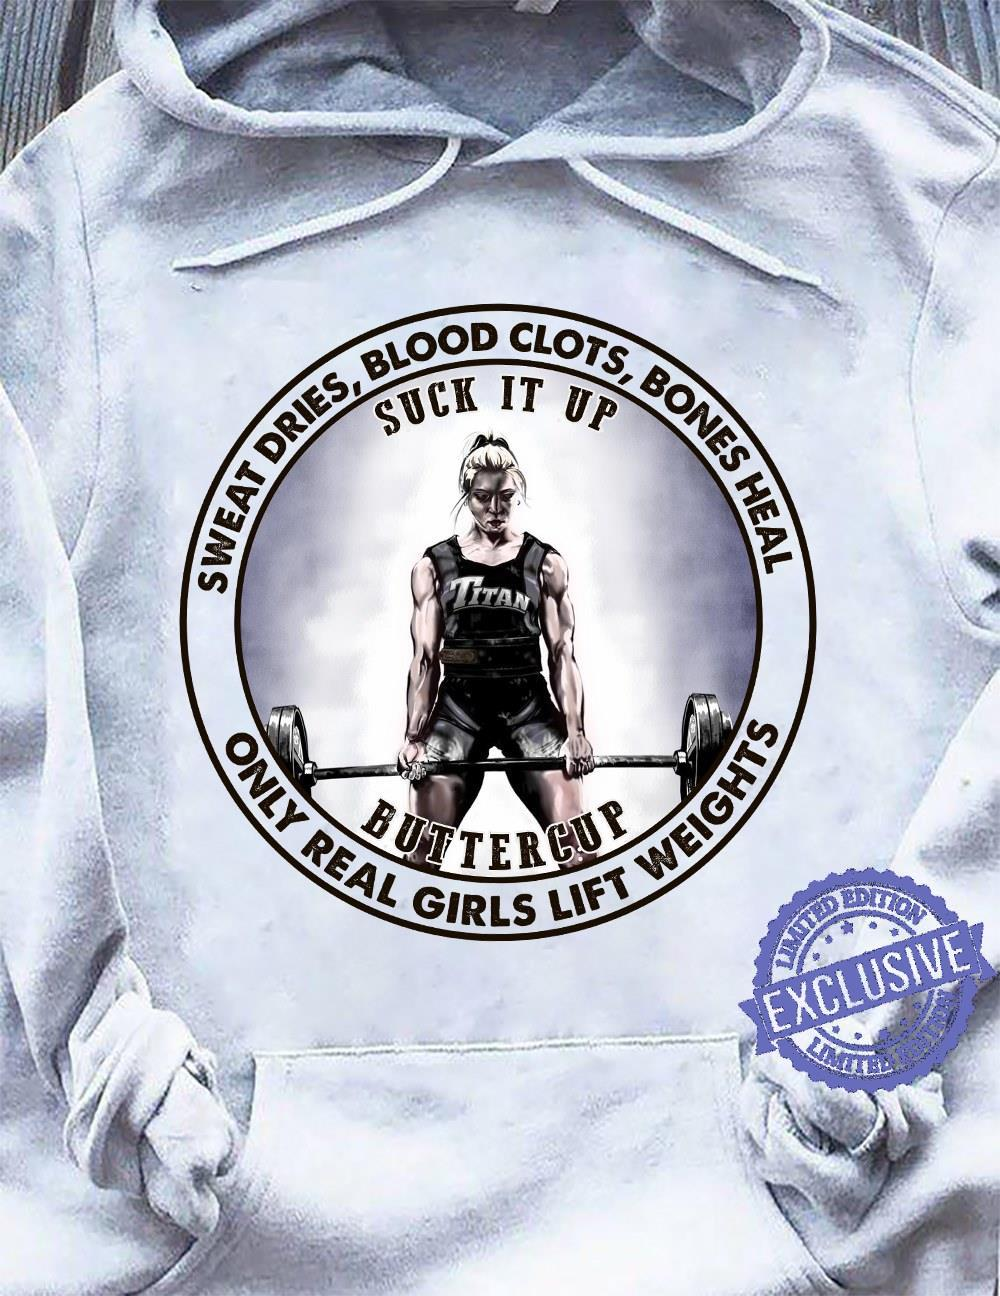 Sweat dries blood clots bones heal suck it up butter cup only real girls lift weights shirt